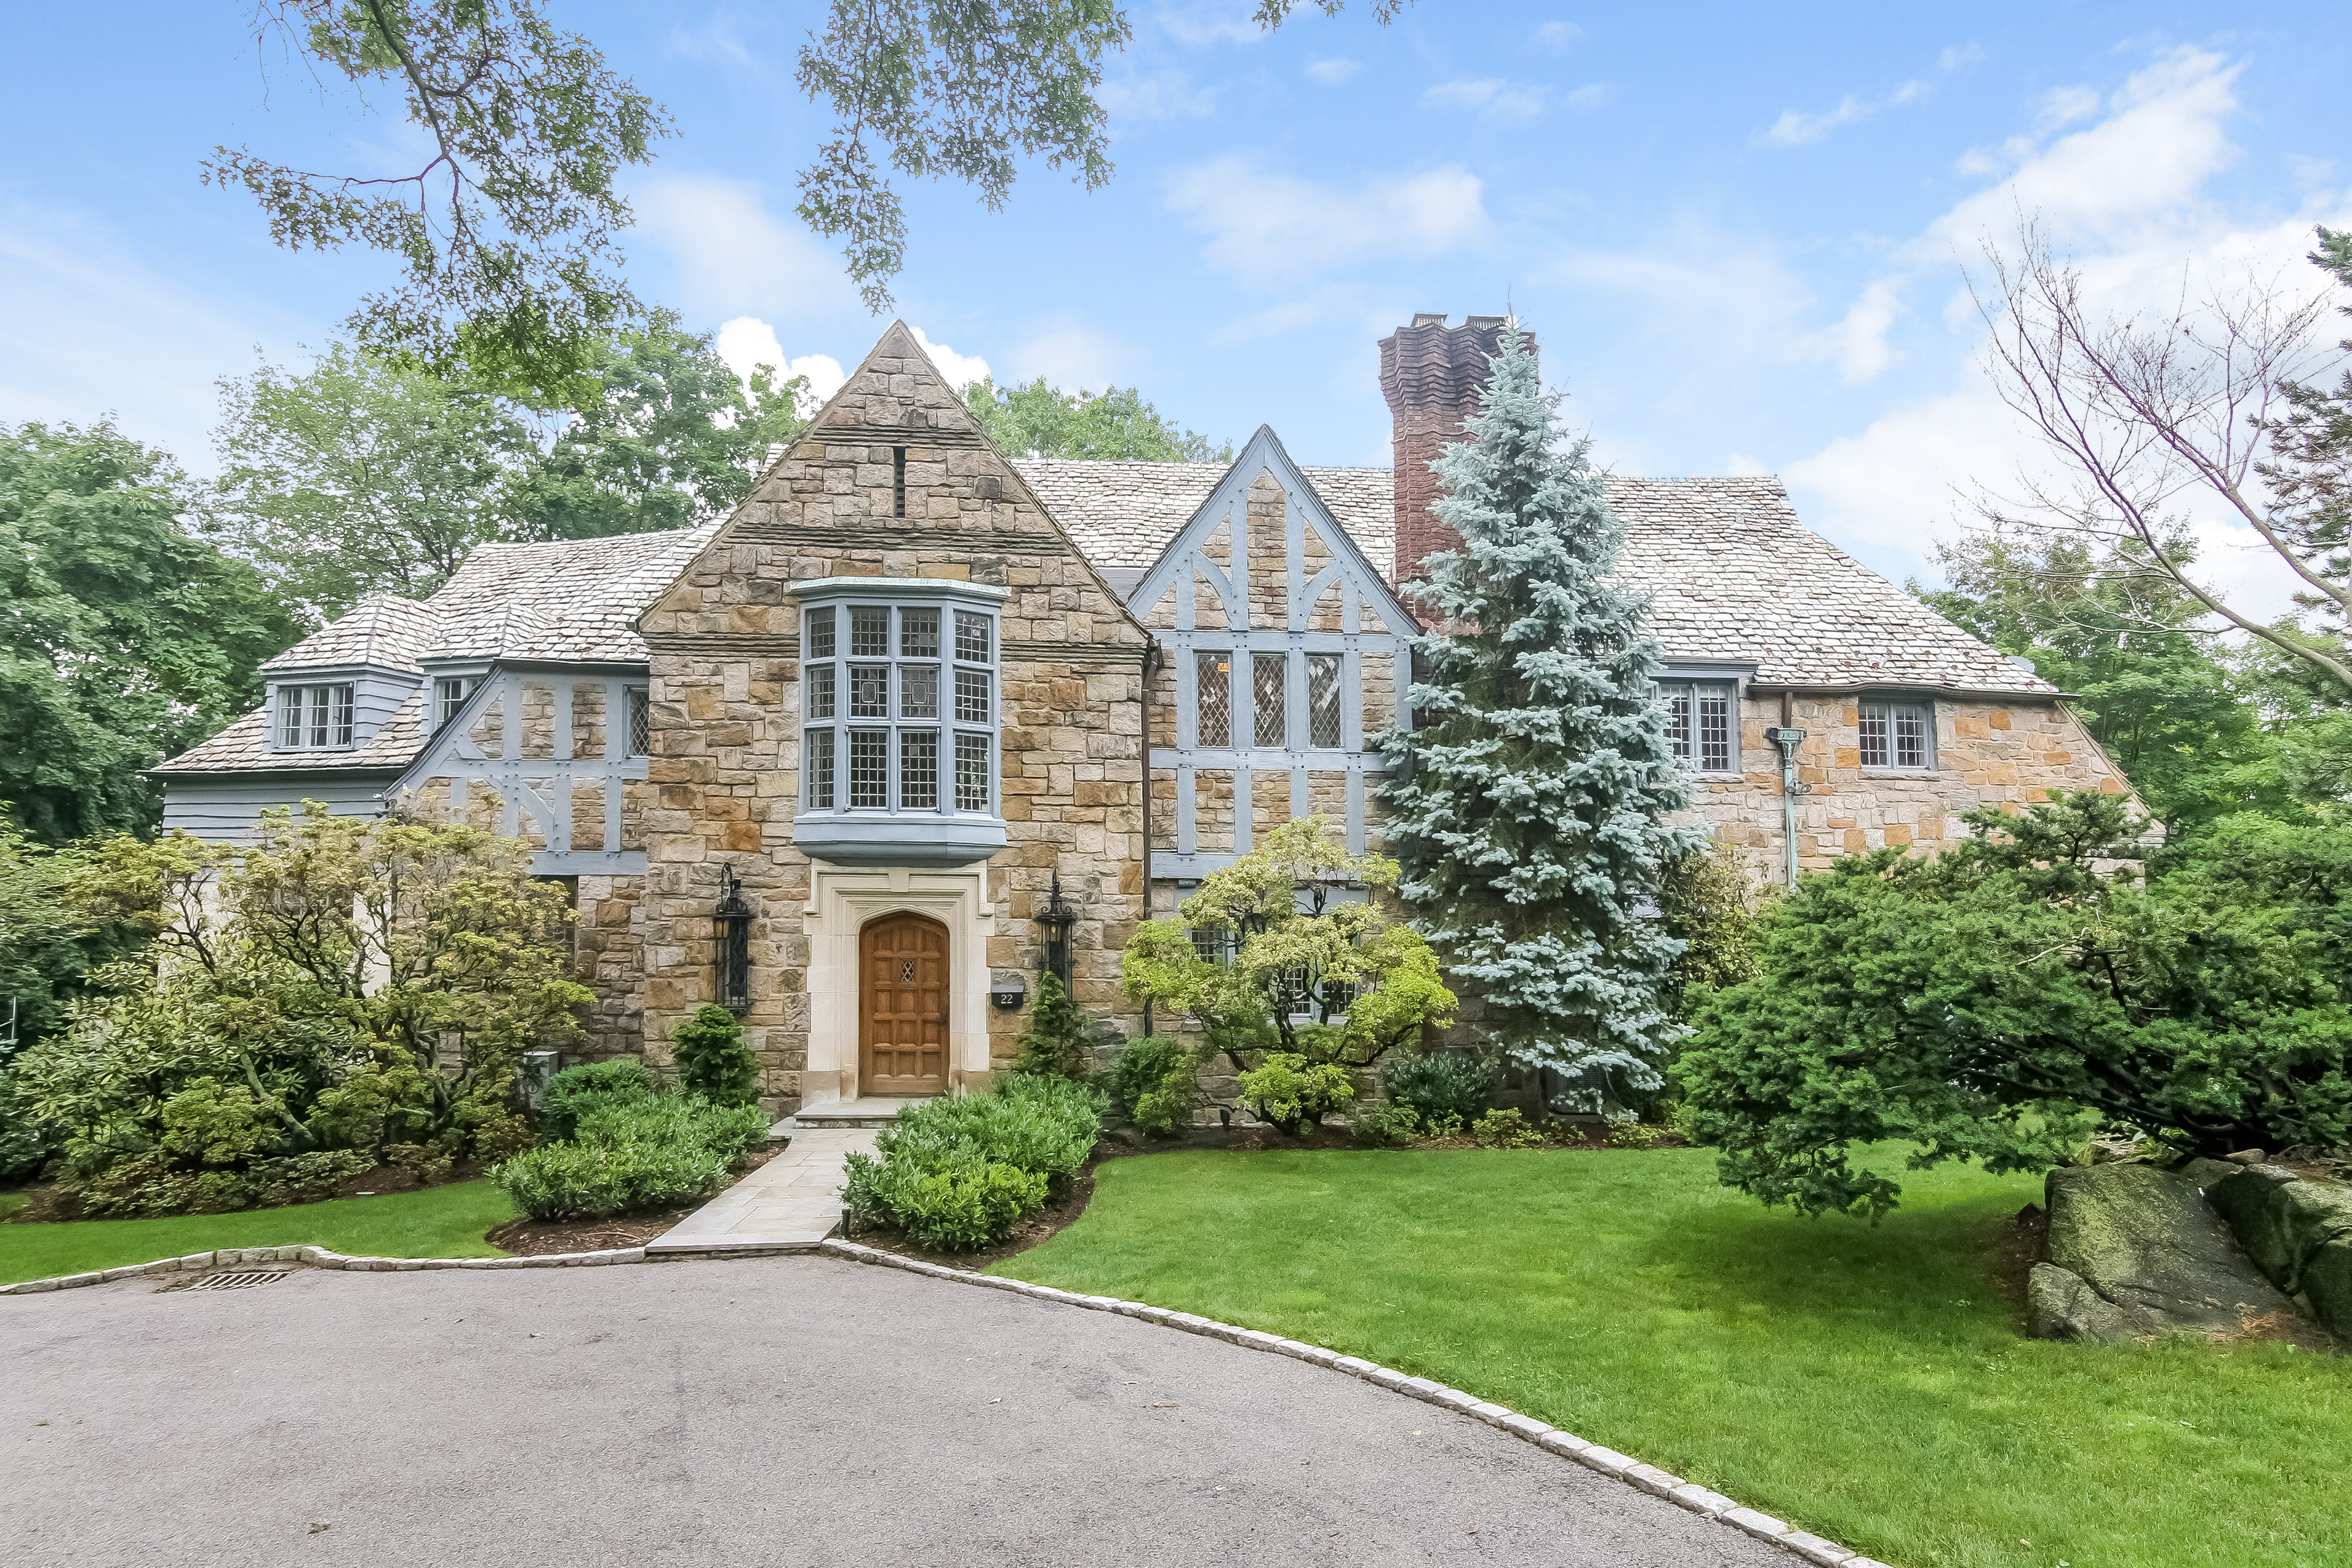 Property For Sale at Stylish and Sophisticated Tudor Rental